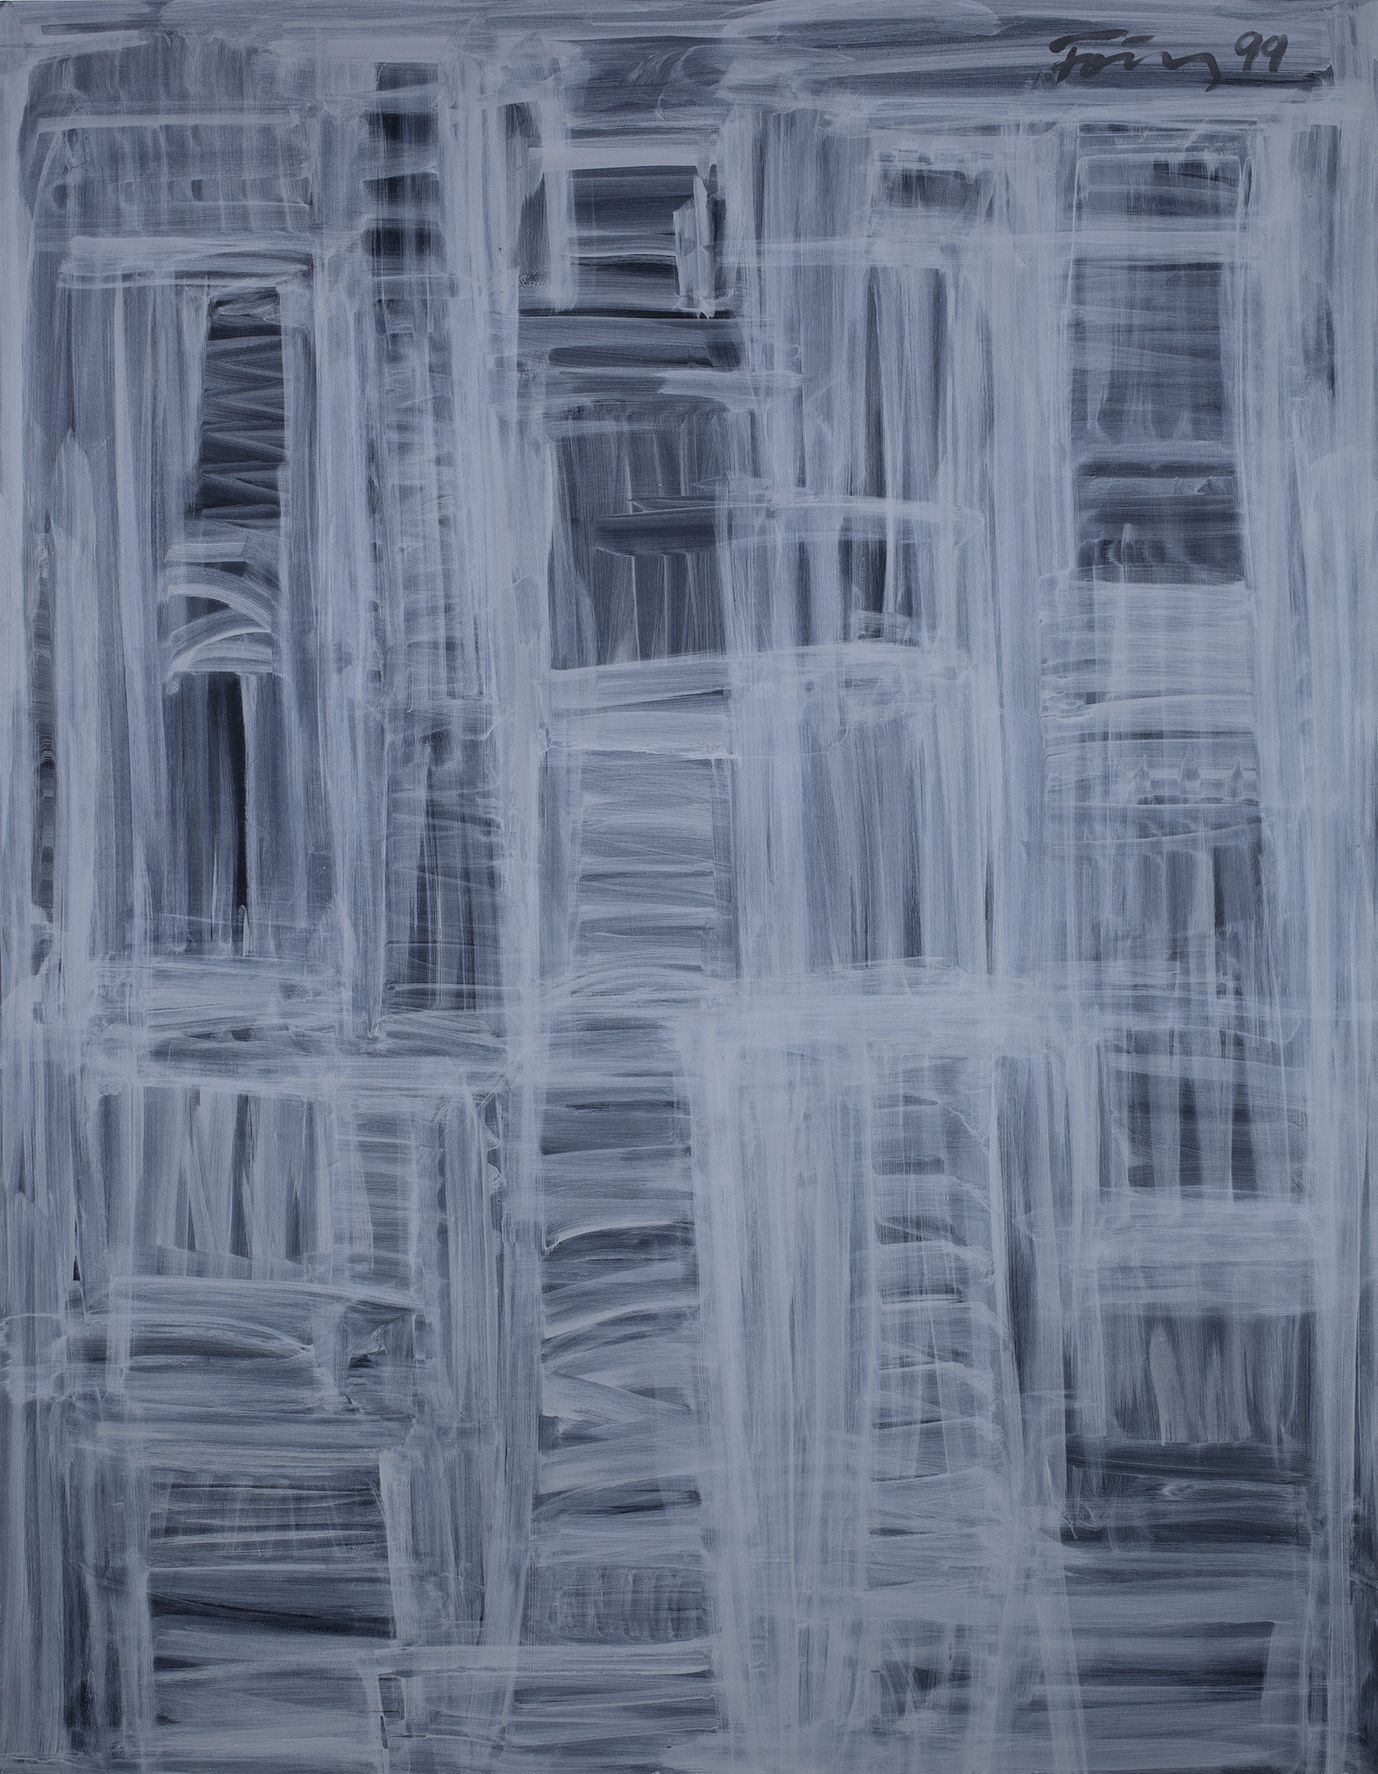 Untitled, 1999 Acrylic on linen 70 7/8 x 55 1/8 inches